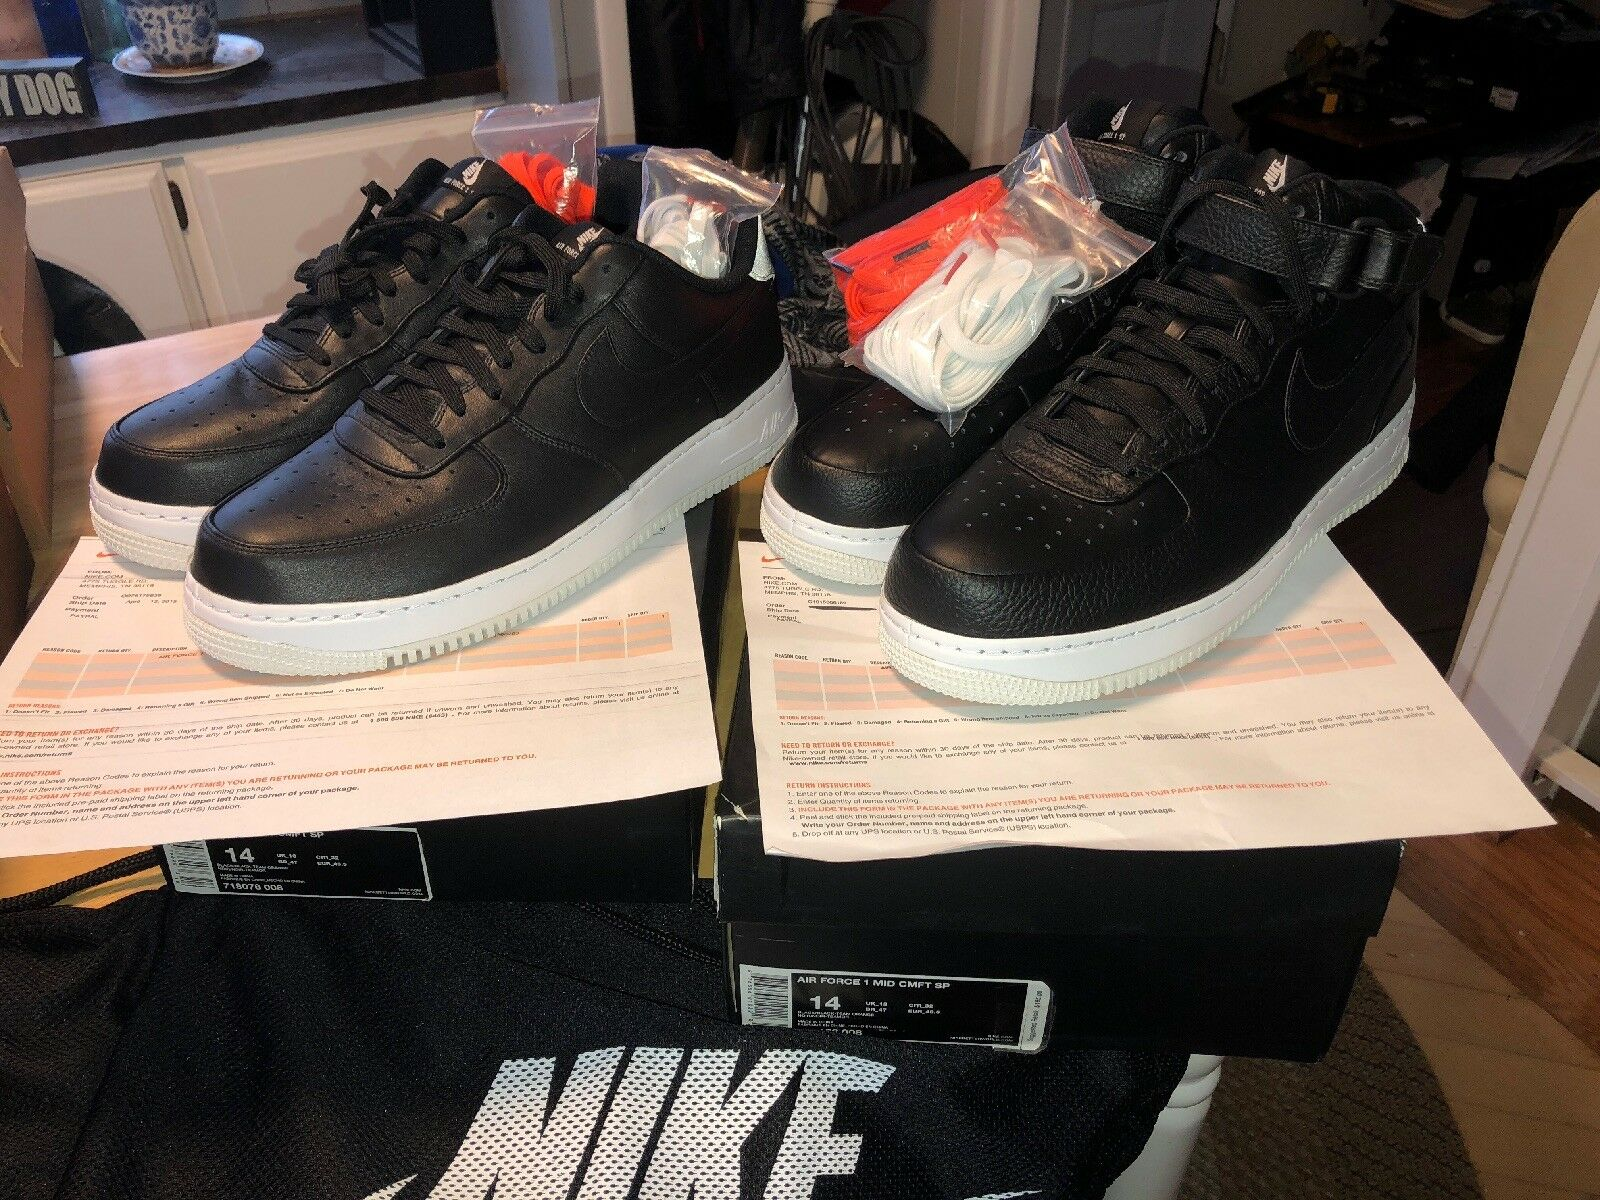 Nike NIKELAB Air Force 1 CMFT SP Pack SIZE 14 Low And Mid